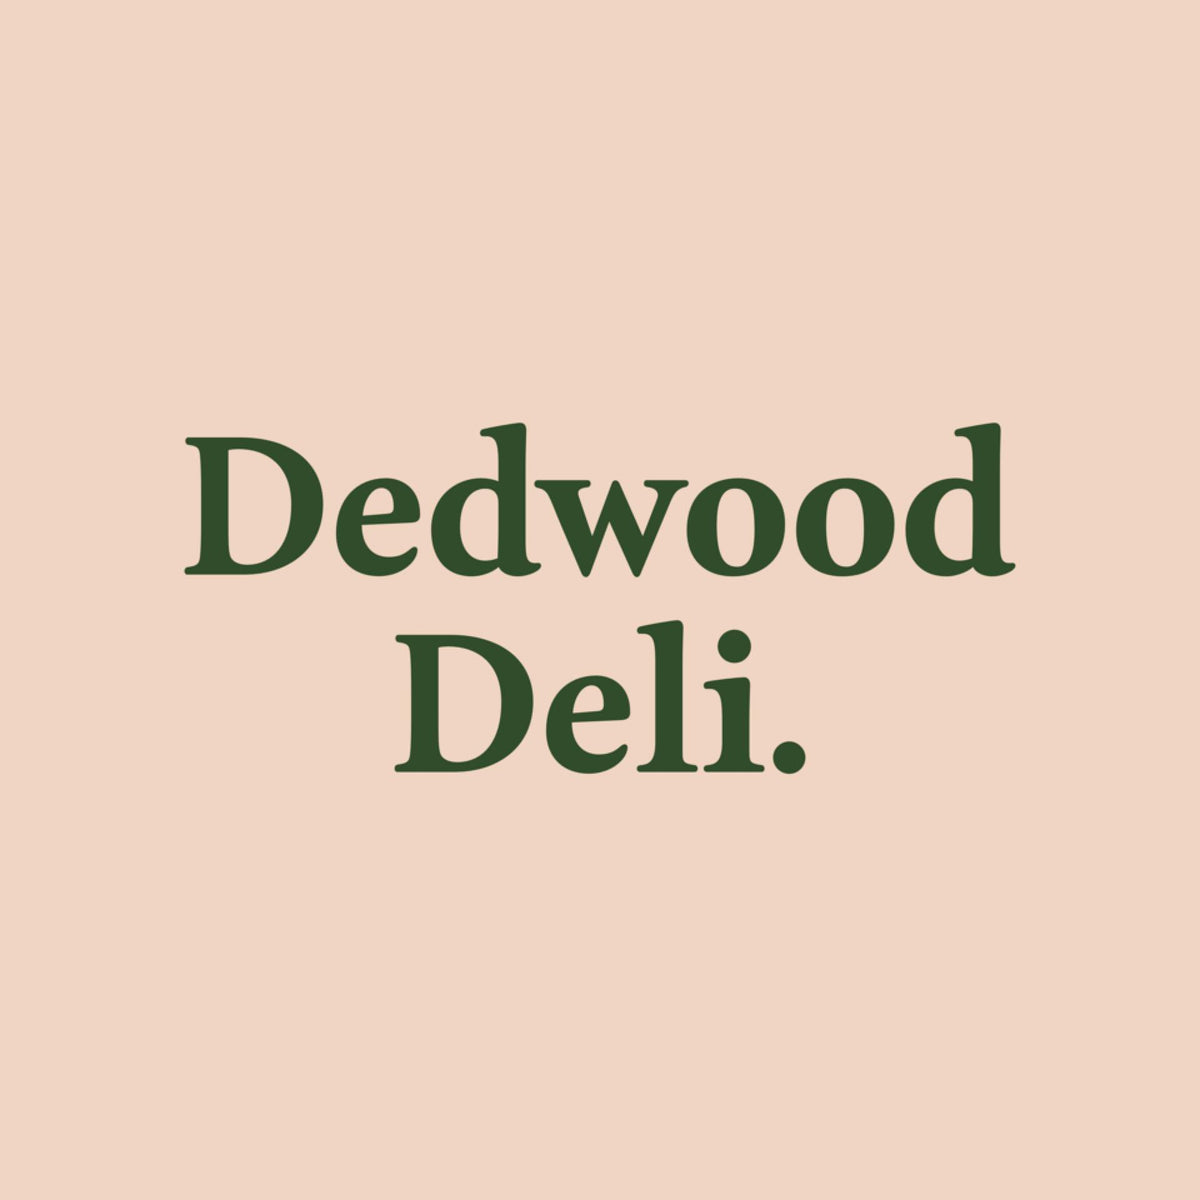 """Dedwood"